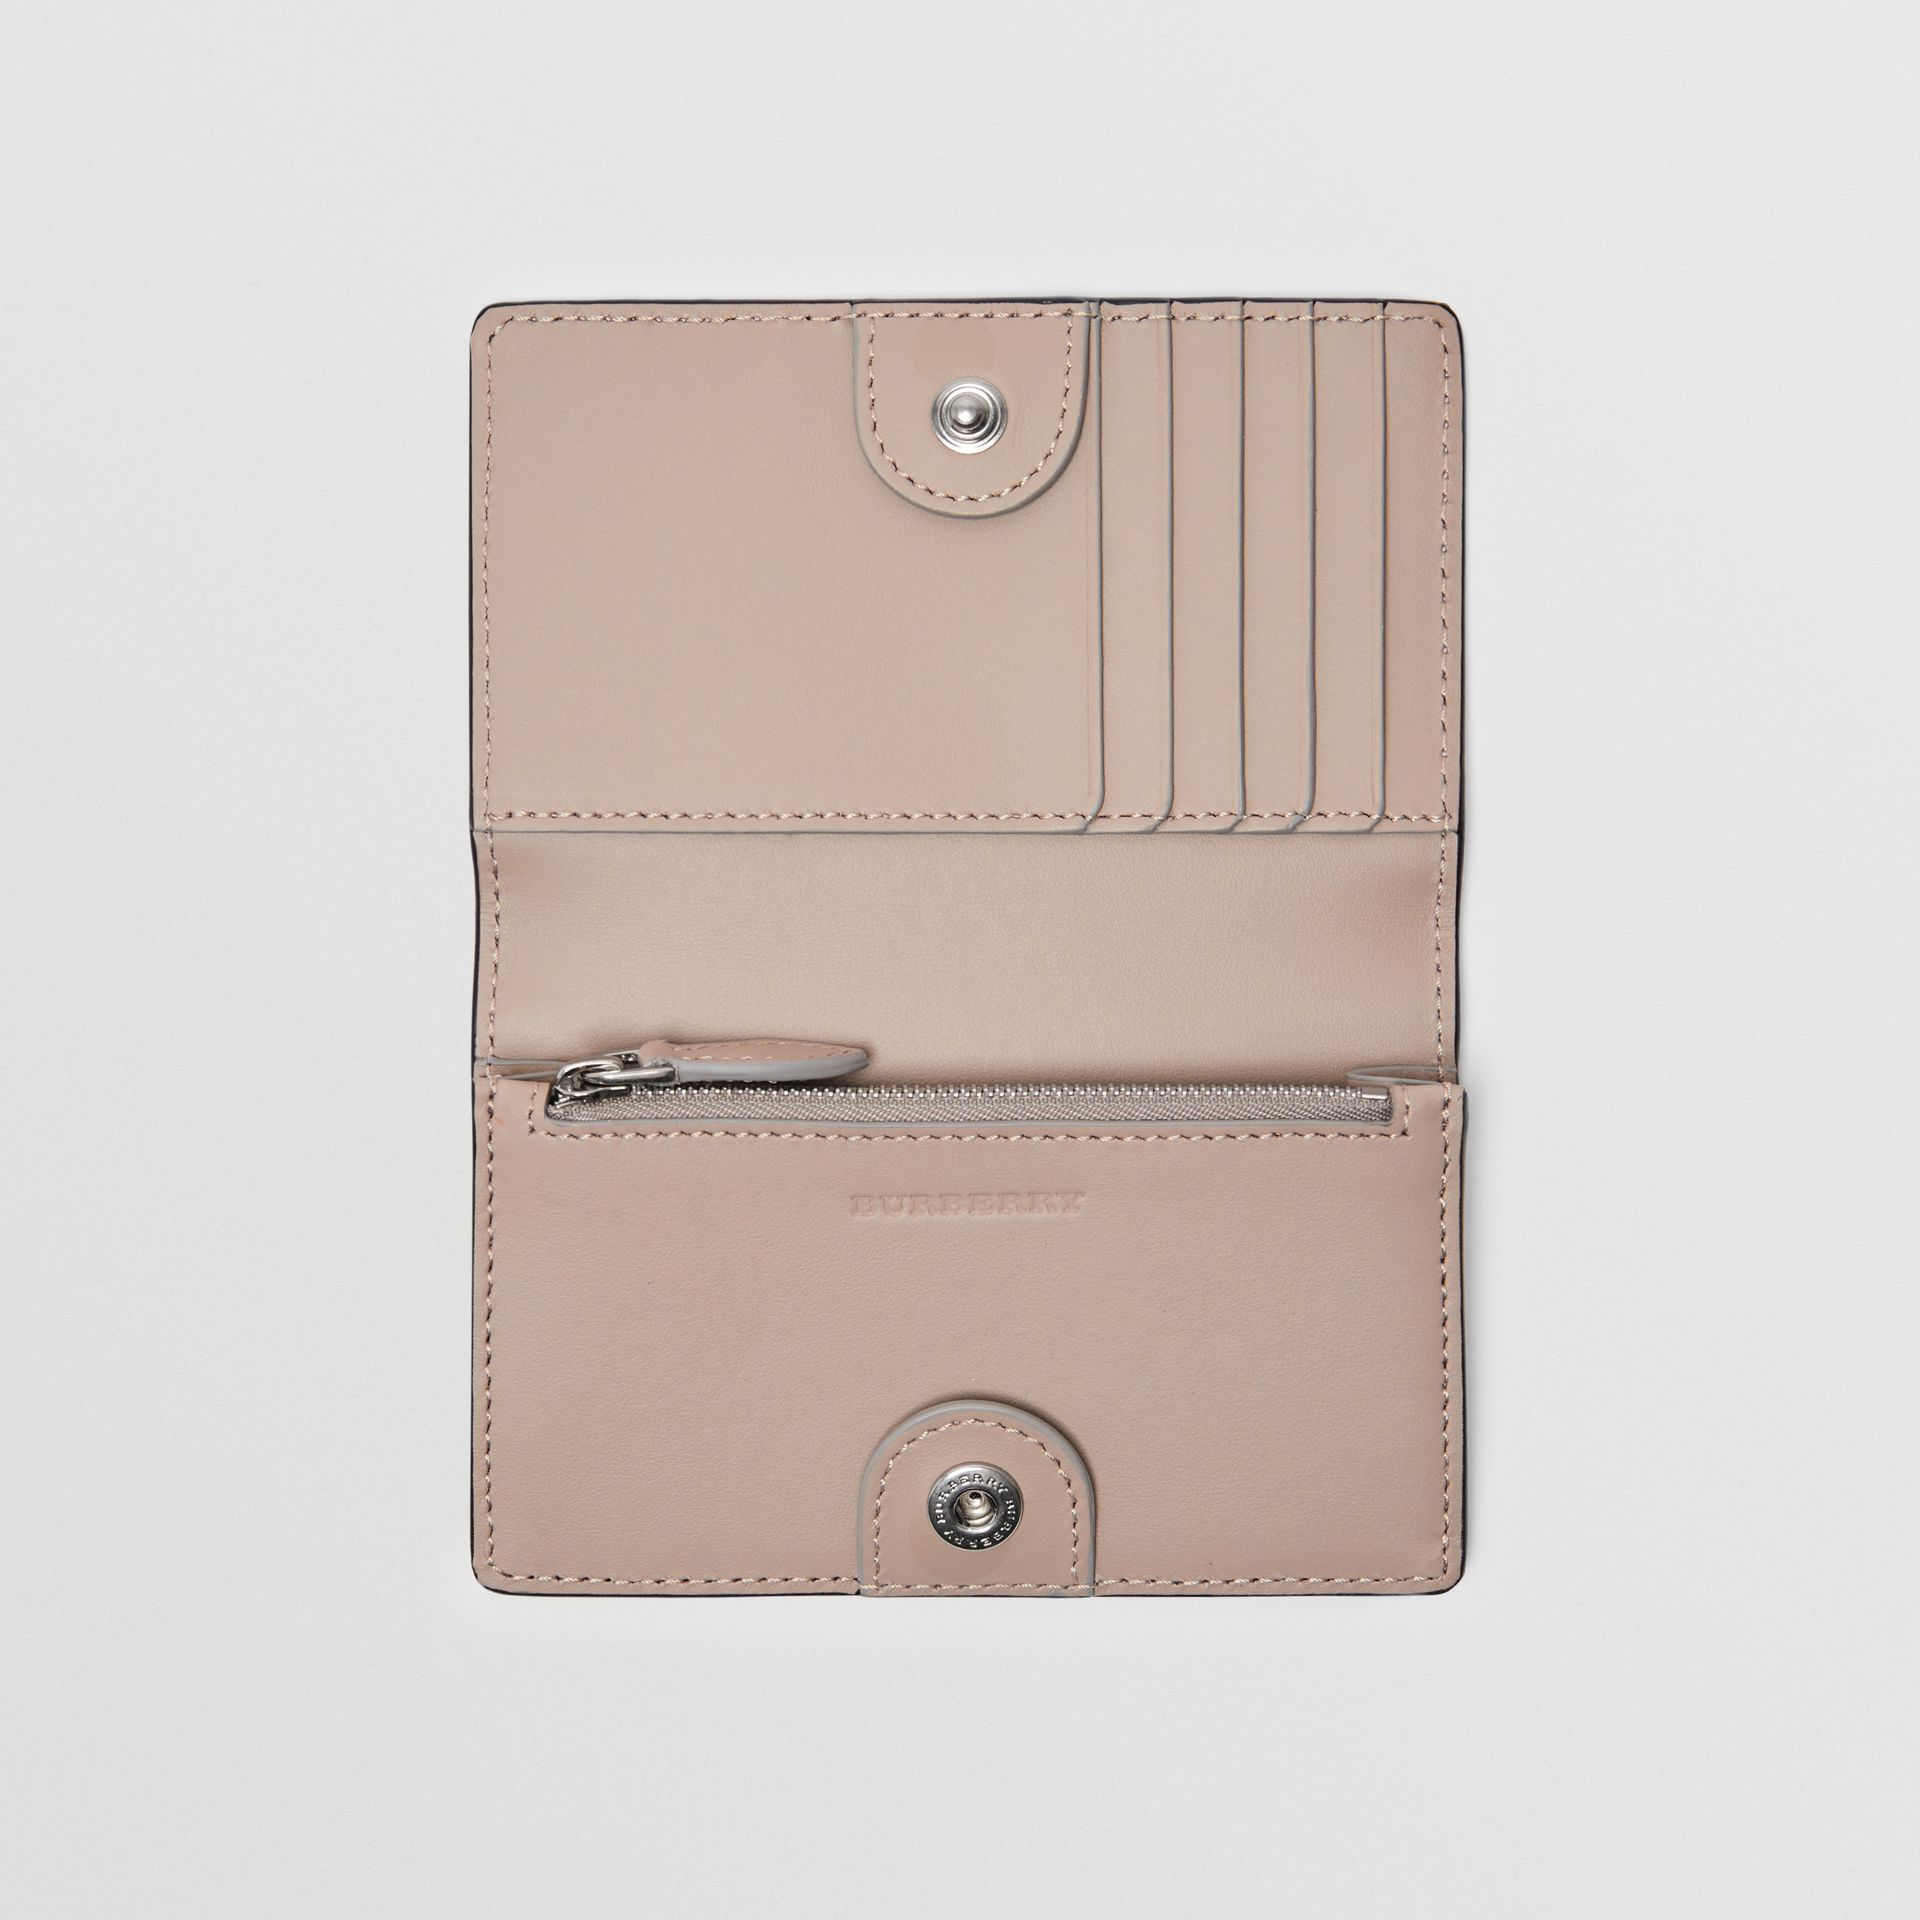 Small Embossed Crest Two-tone Leather Wallet in Chalk Pink - Women | Burberry Canada - gallery image 2